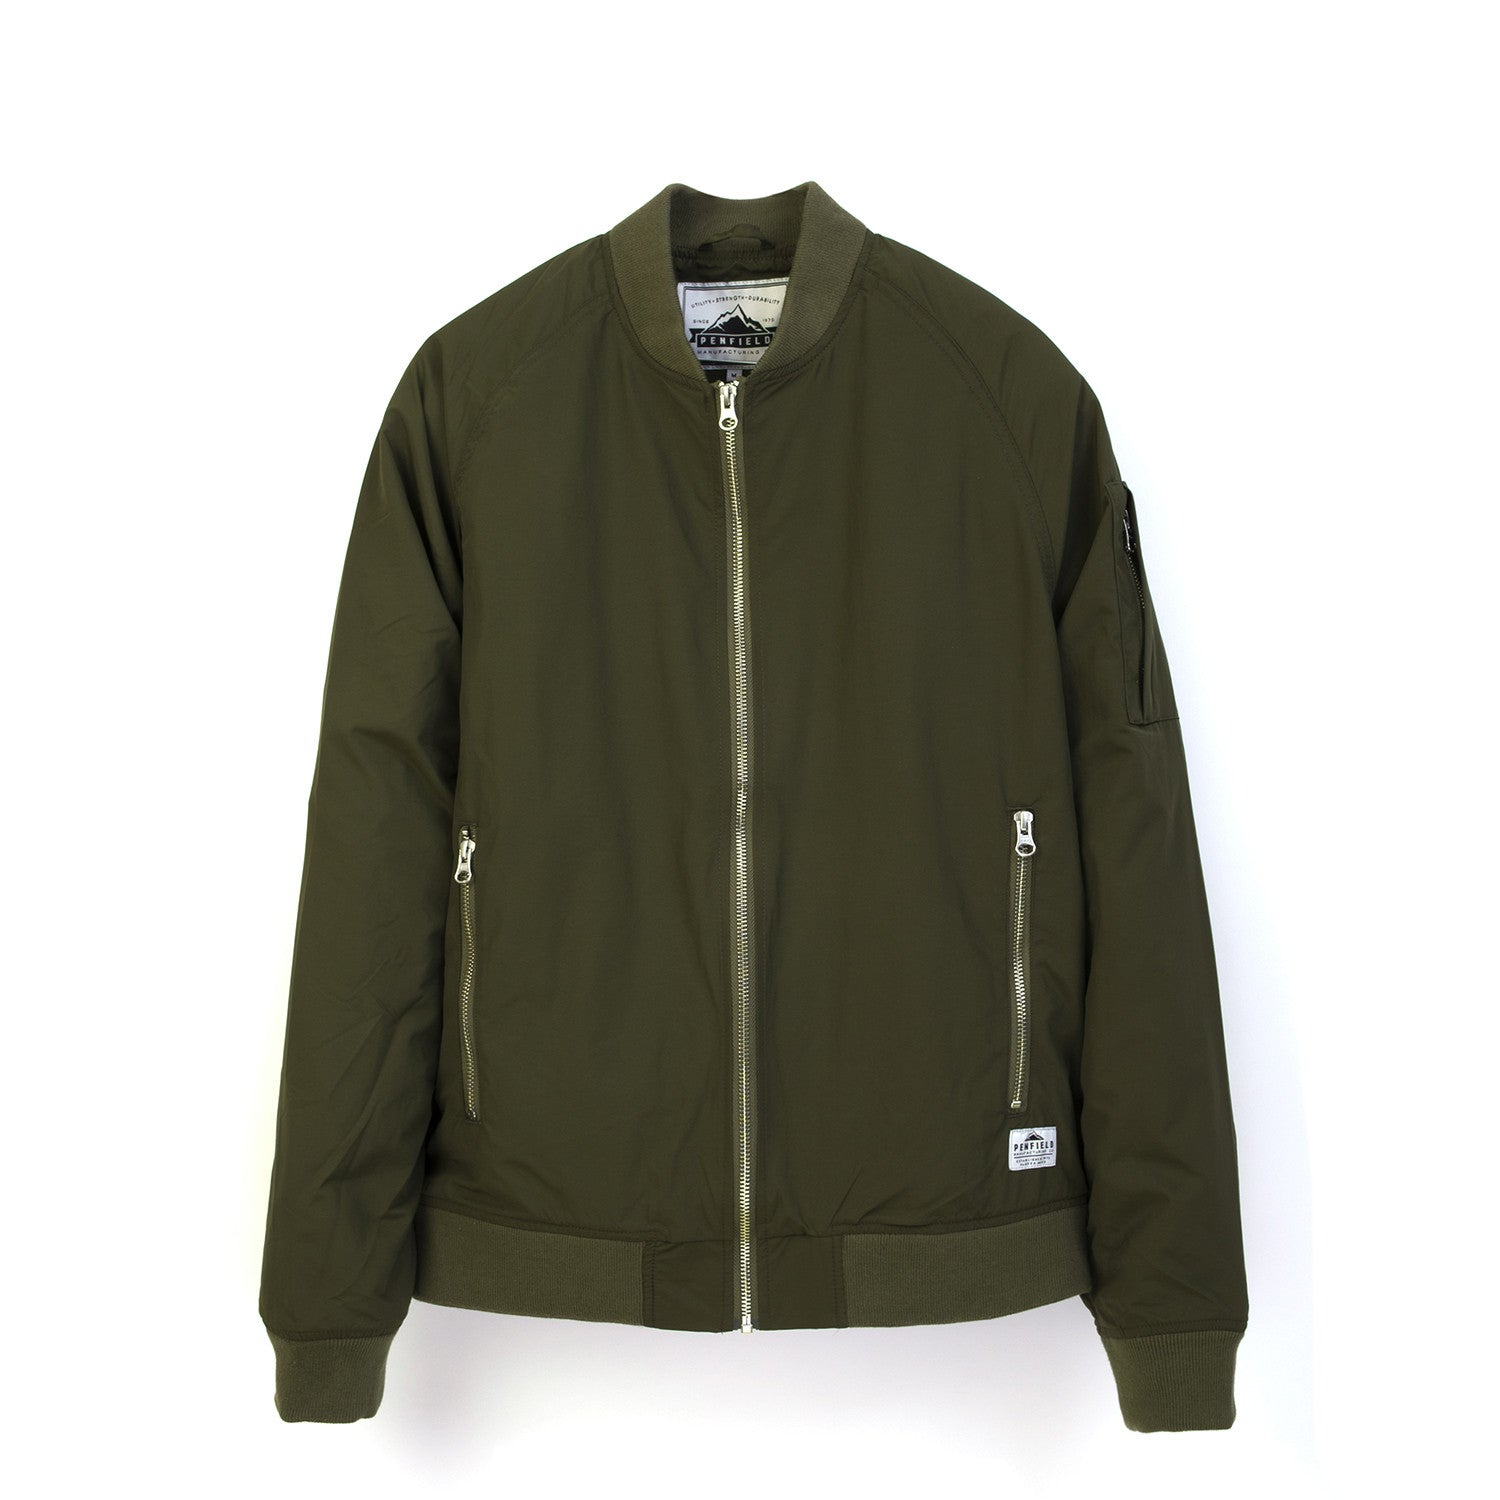 Penfield Mens Okenfield Jacket Olive